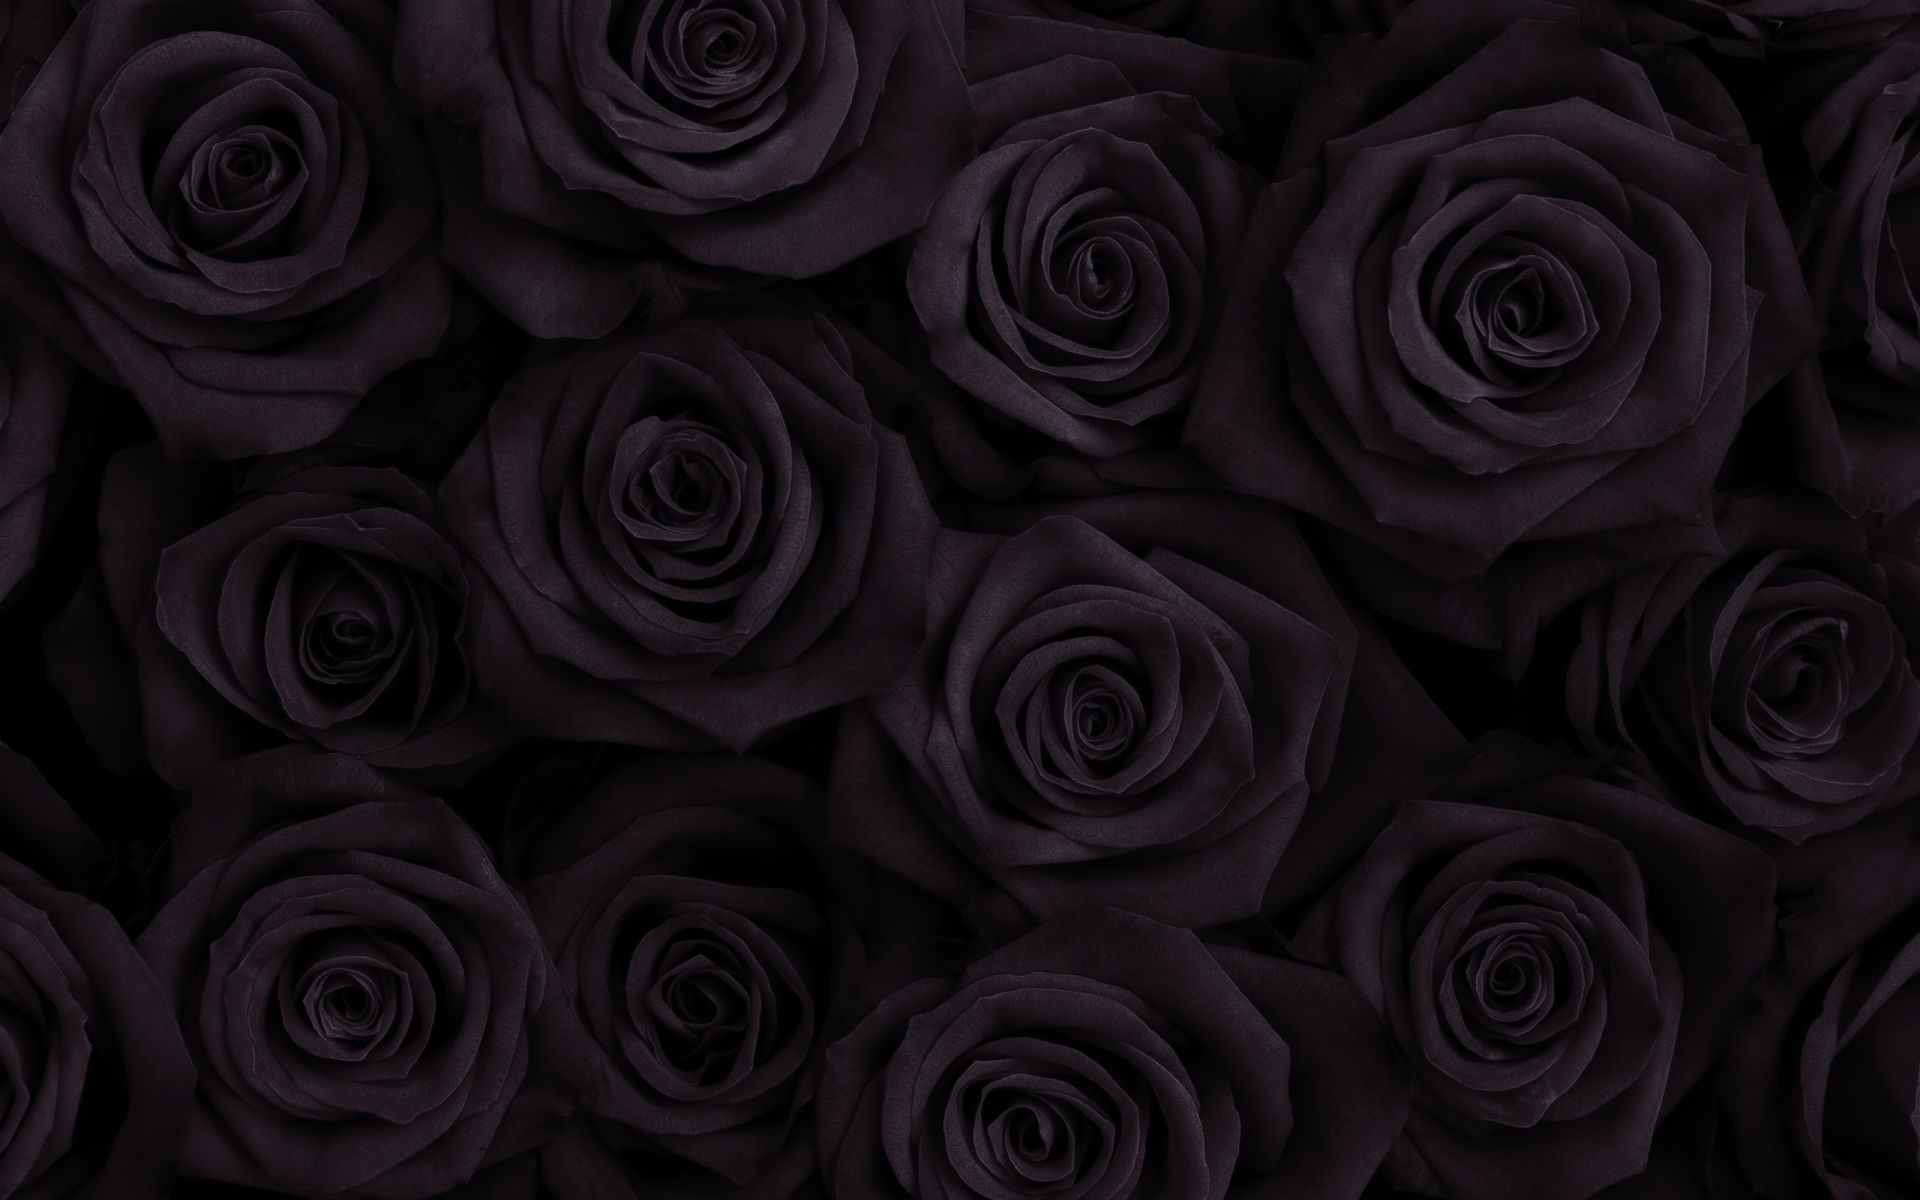 Black Rose Hd Posted By Sarah Tremblay